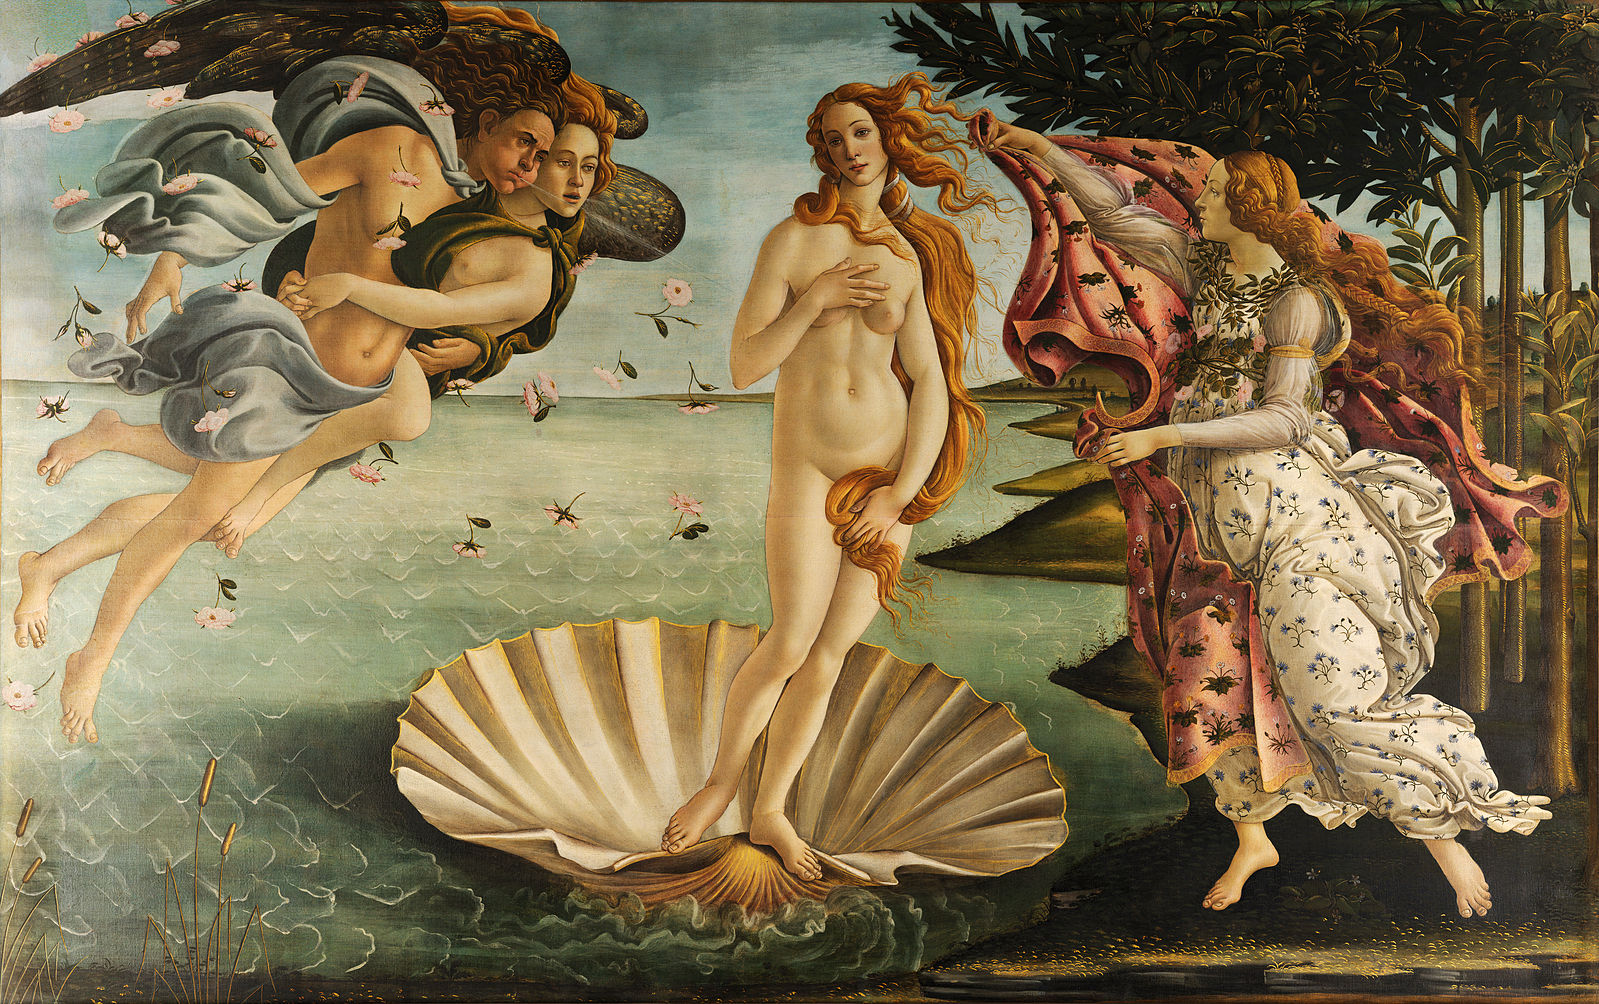 The Birth of Venus by Sandro Botticelli (1486)